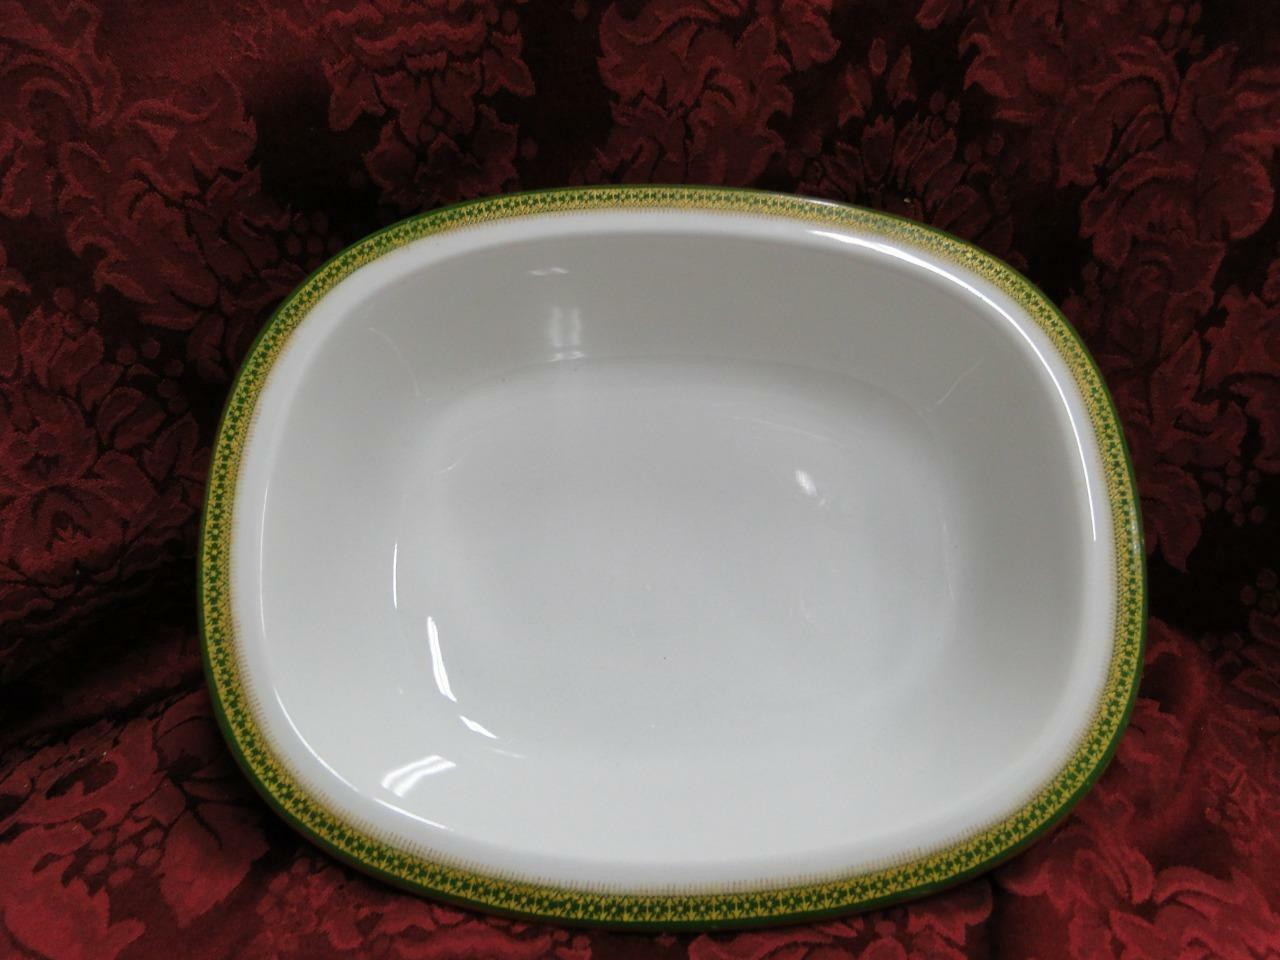 Tressemanes & Vogt 5222, White w/ Gold on Green Band: Oval Vegetable Bowl 9 3/8""